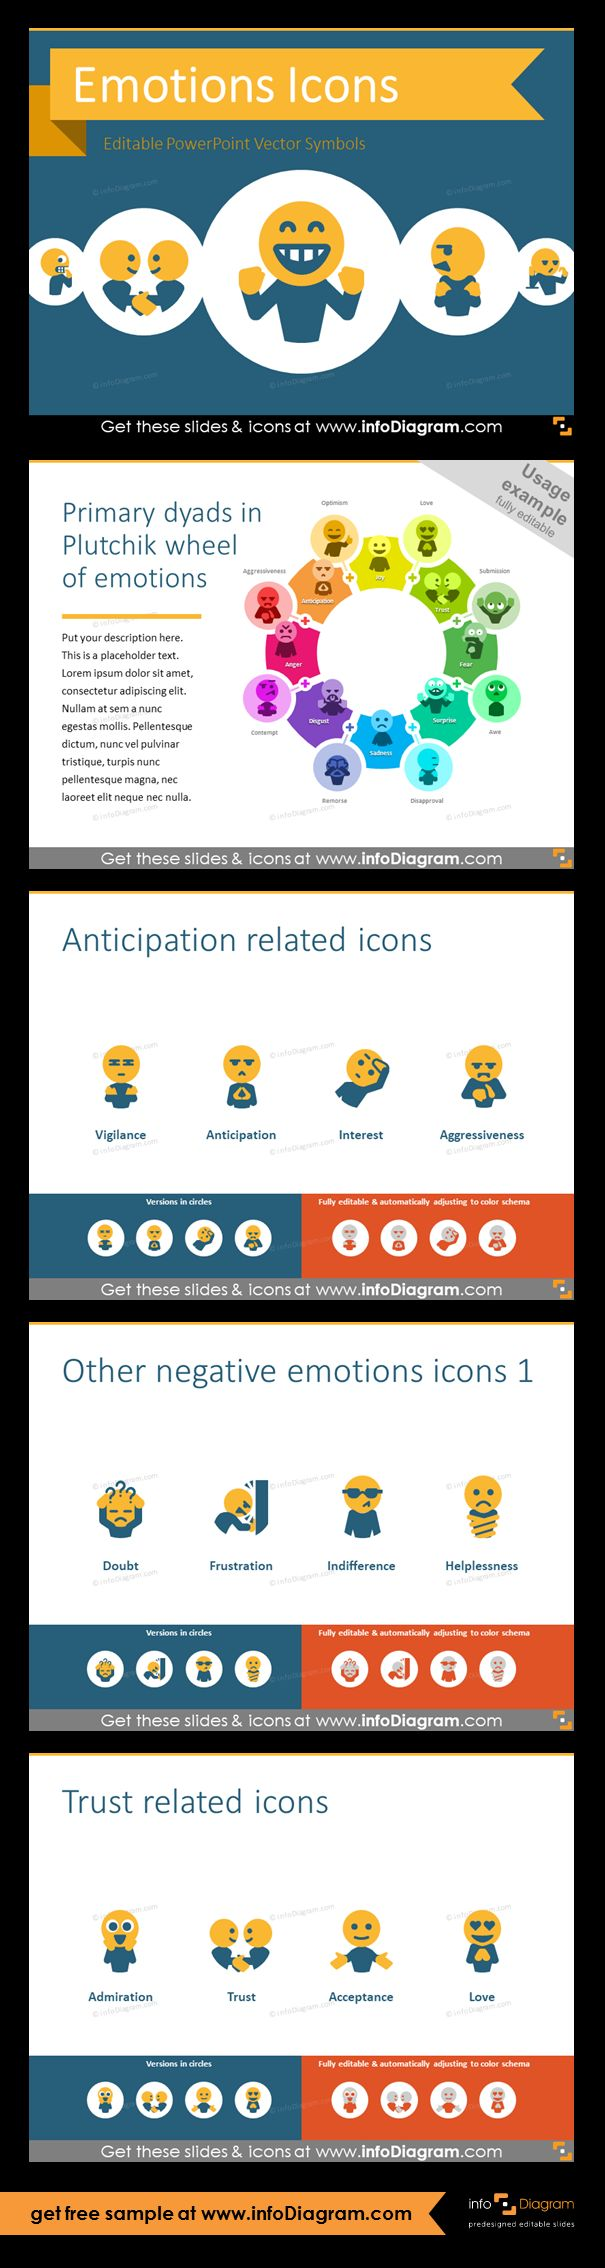 Collection of human feelings and emotions list symbols and diagrams for HR, psychology, coaching, soft-skills training applications. Fully editable style. Size and colors easy to adjust using PowerPoint editor. Chart example - primary dyads in Plutchik wheel of emotions; anticipation icons - vigilance, anticipation, interest, aggressiveness; negative emotions - doubt, frustration, indifference, helplessness; trust - admiration, trust, acceptance, love.